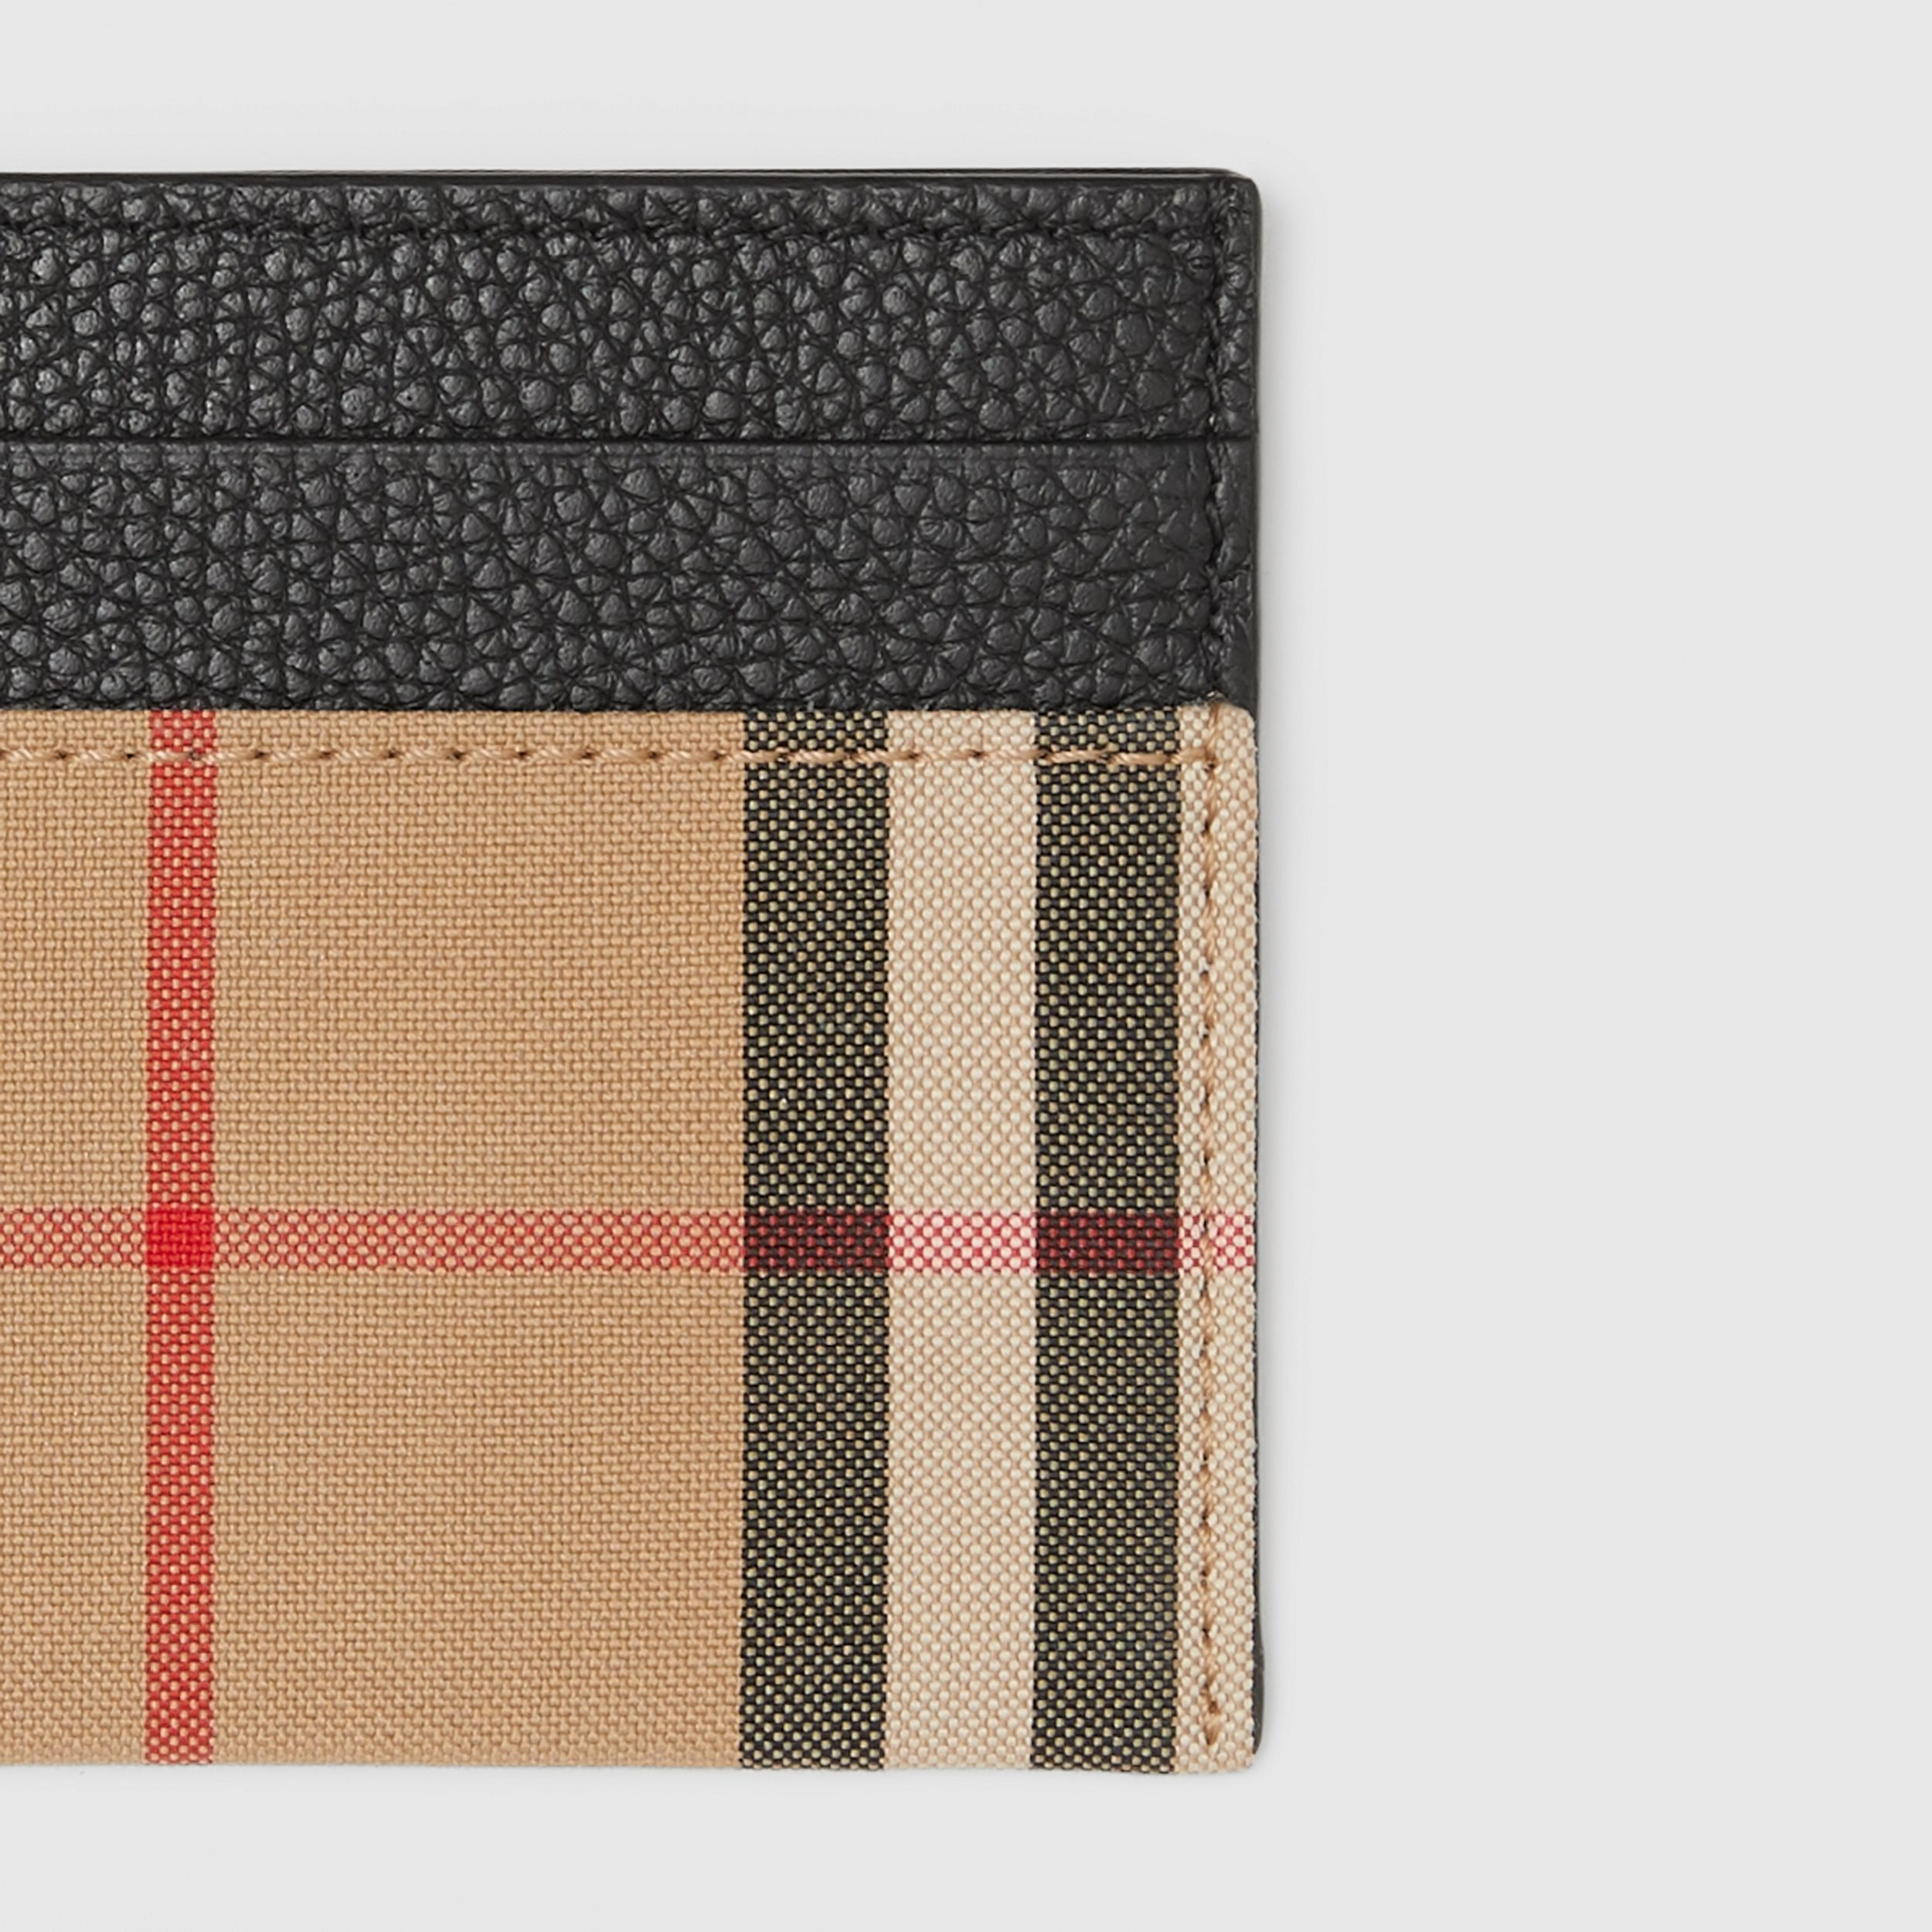 Vintage Check and Leather Card Case in Black - Women | Burberry - 2